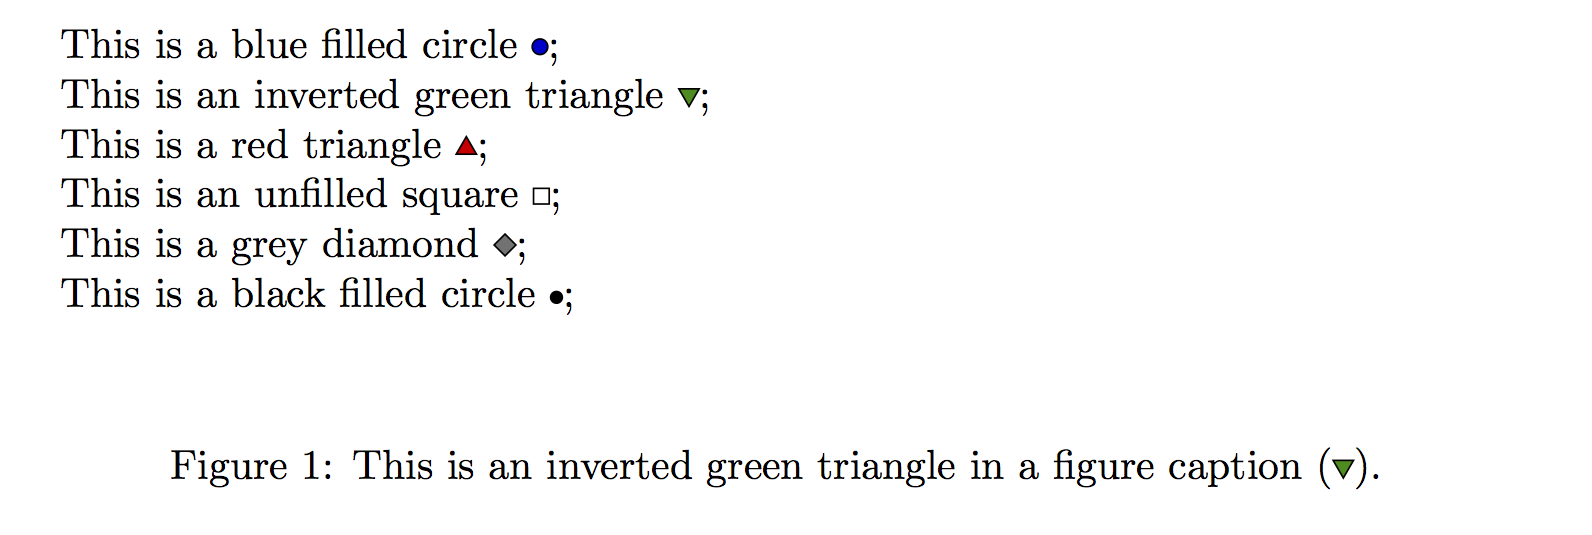 Adding Shape And Symbol To Figure Captions In Latex Callum